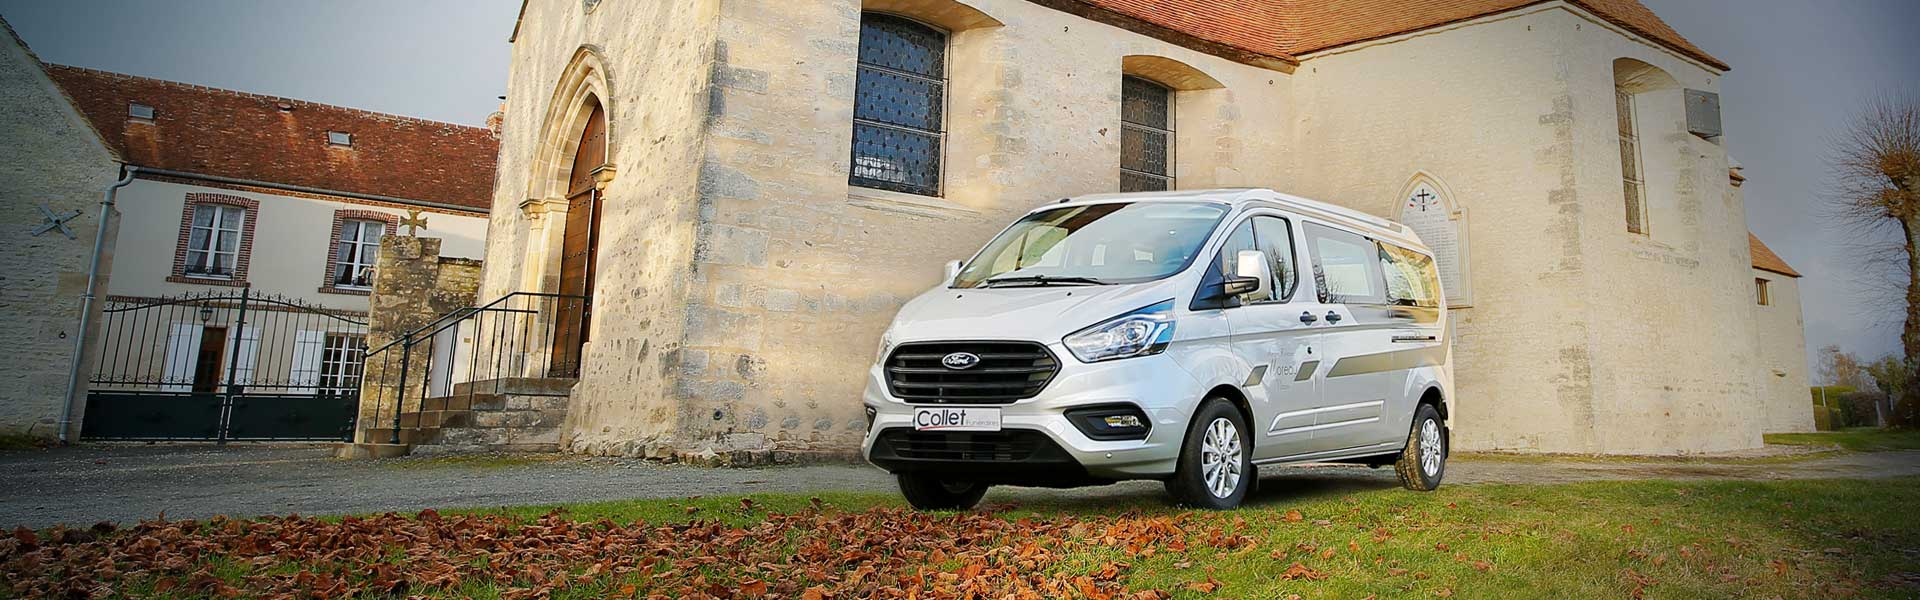 collet-funeraire-ambiance-ford2